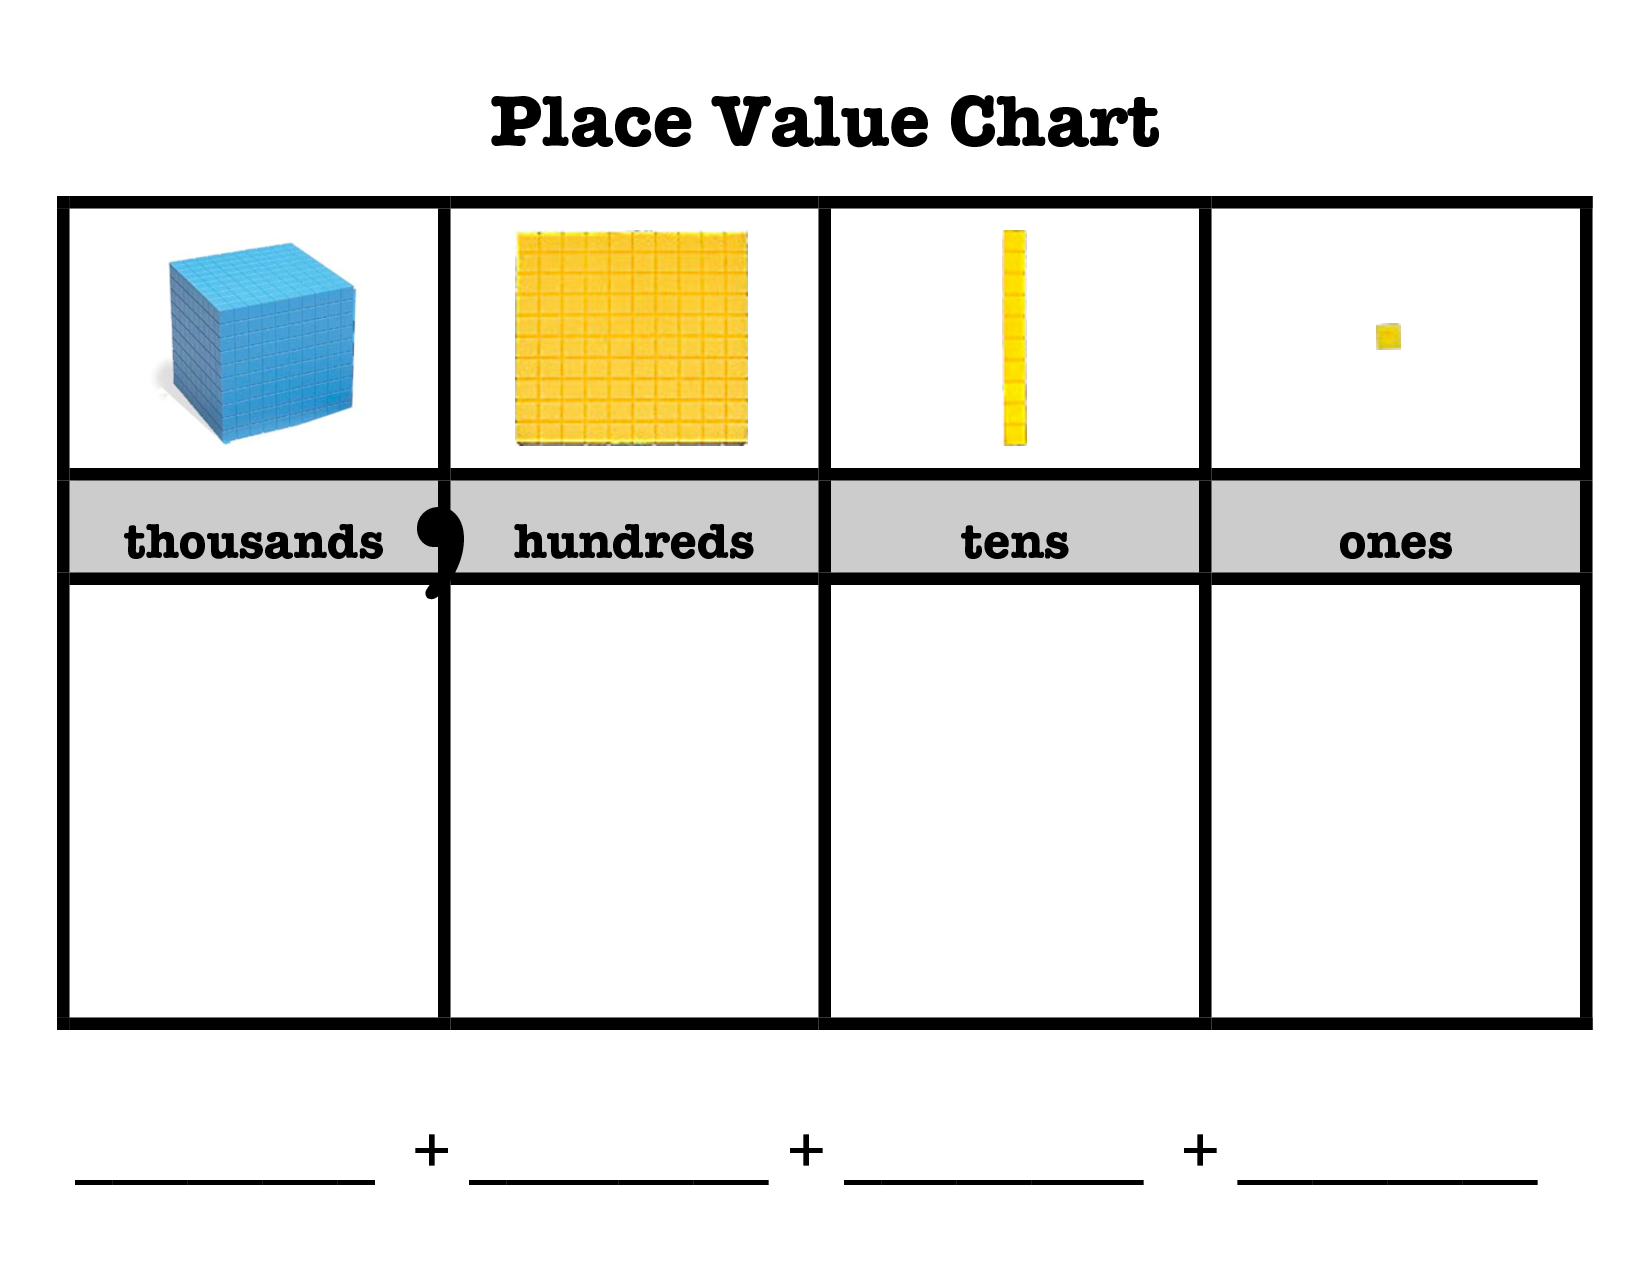 Cube clipart place value Value Thousands … Place Chart